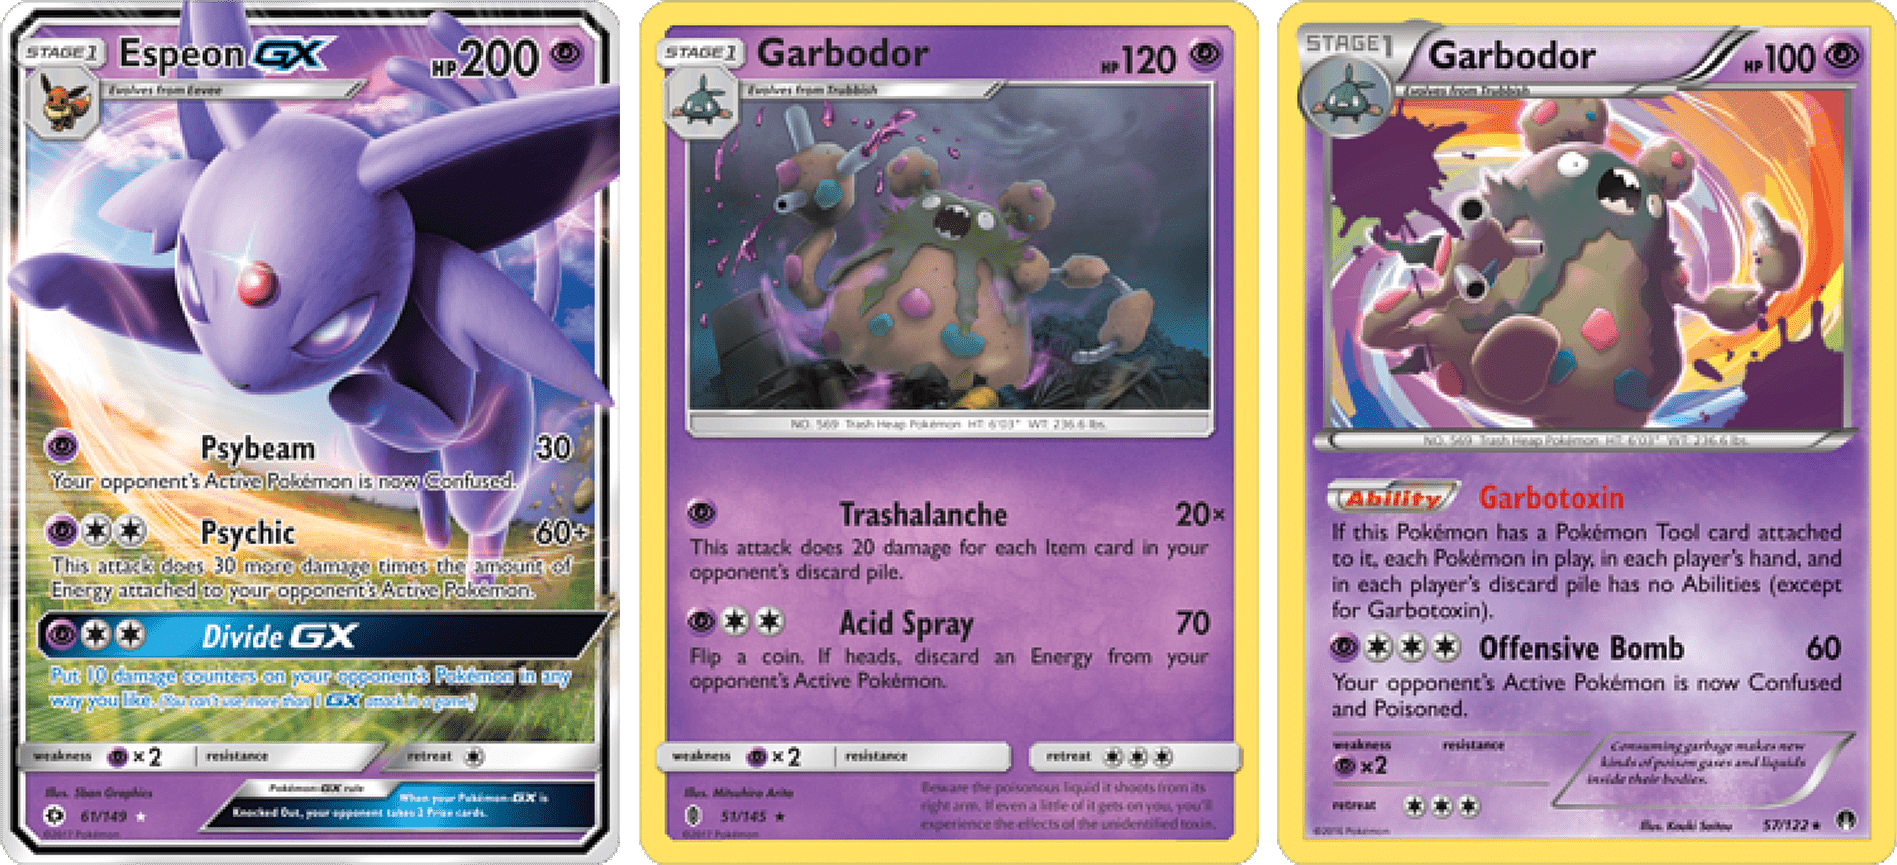 The focal points of the Espeon GX/Garbodor deck!